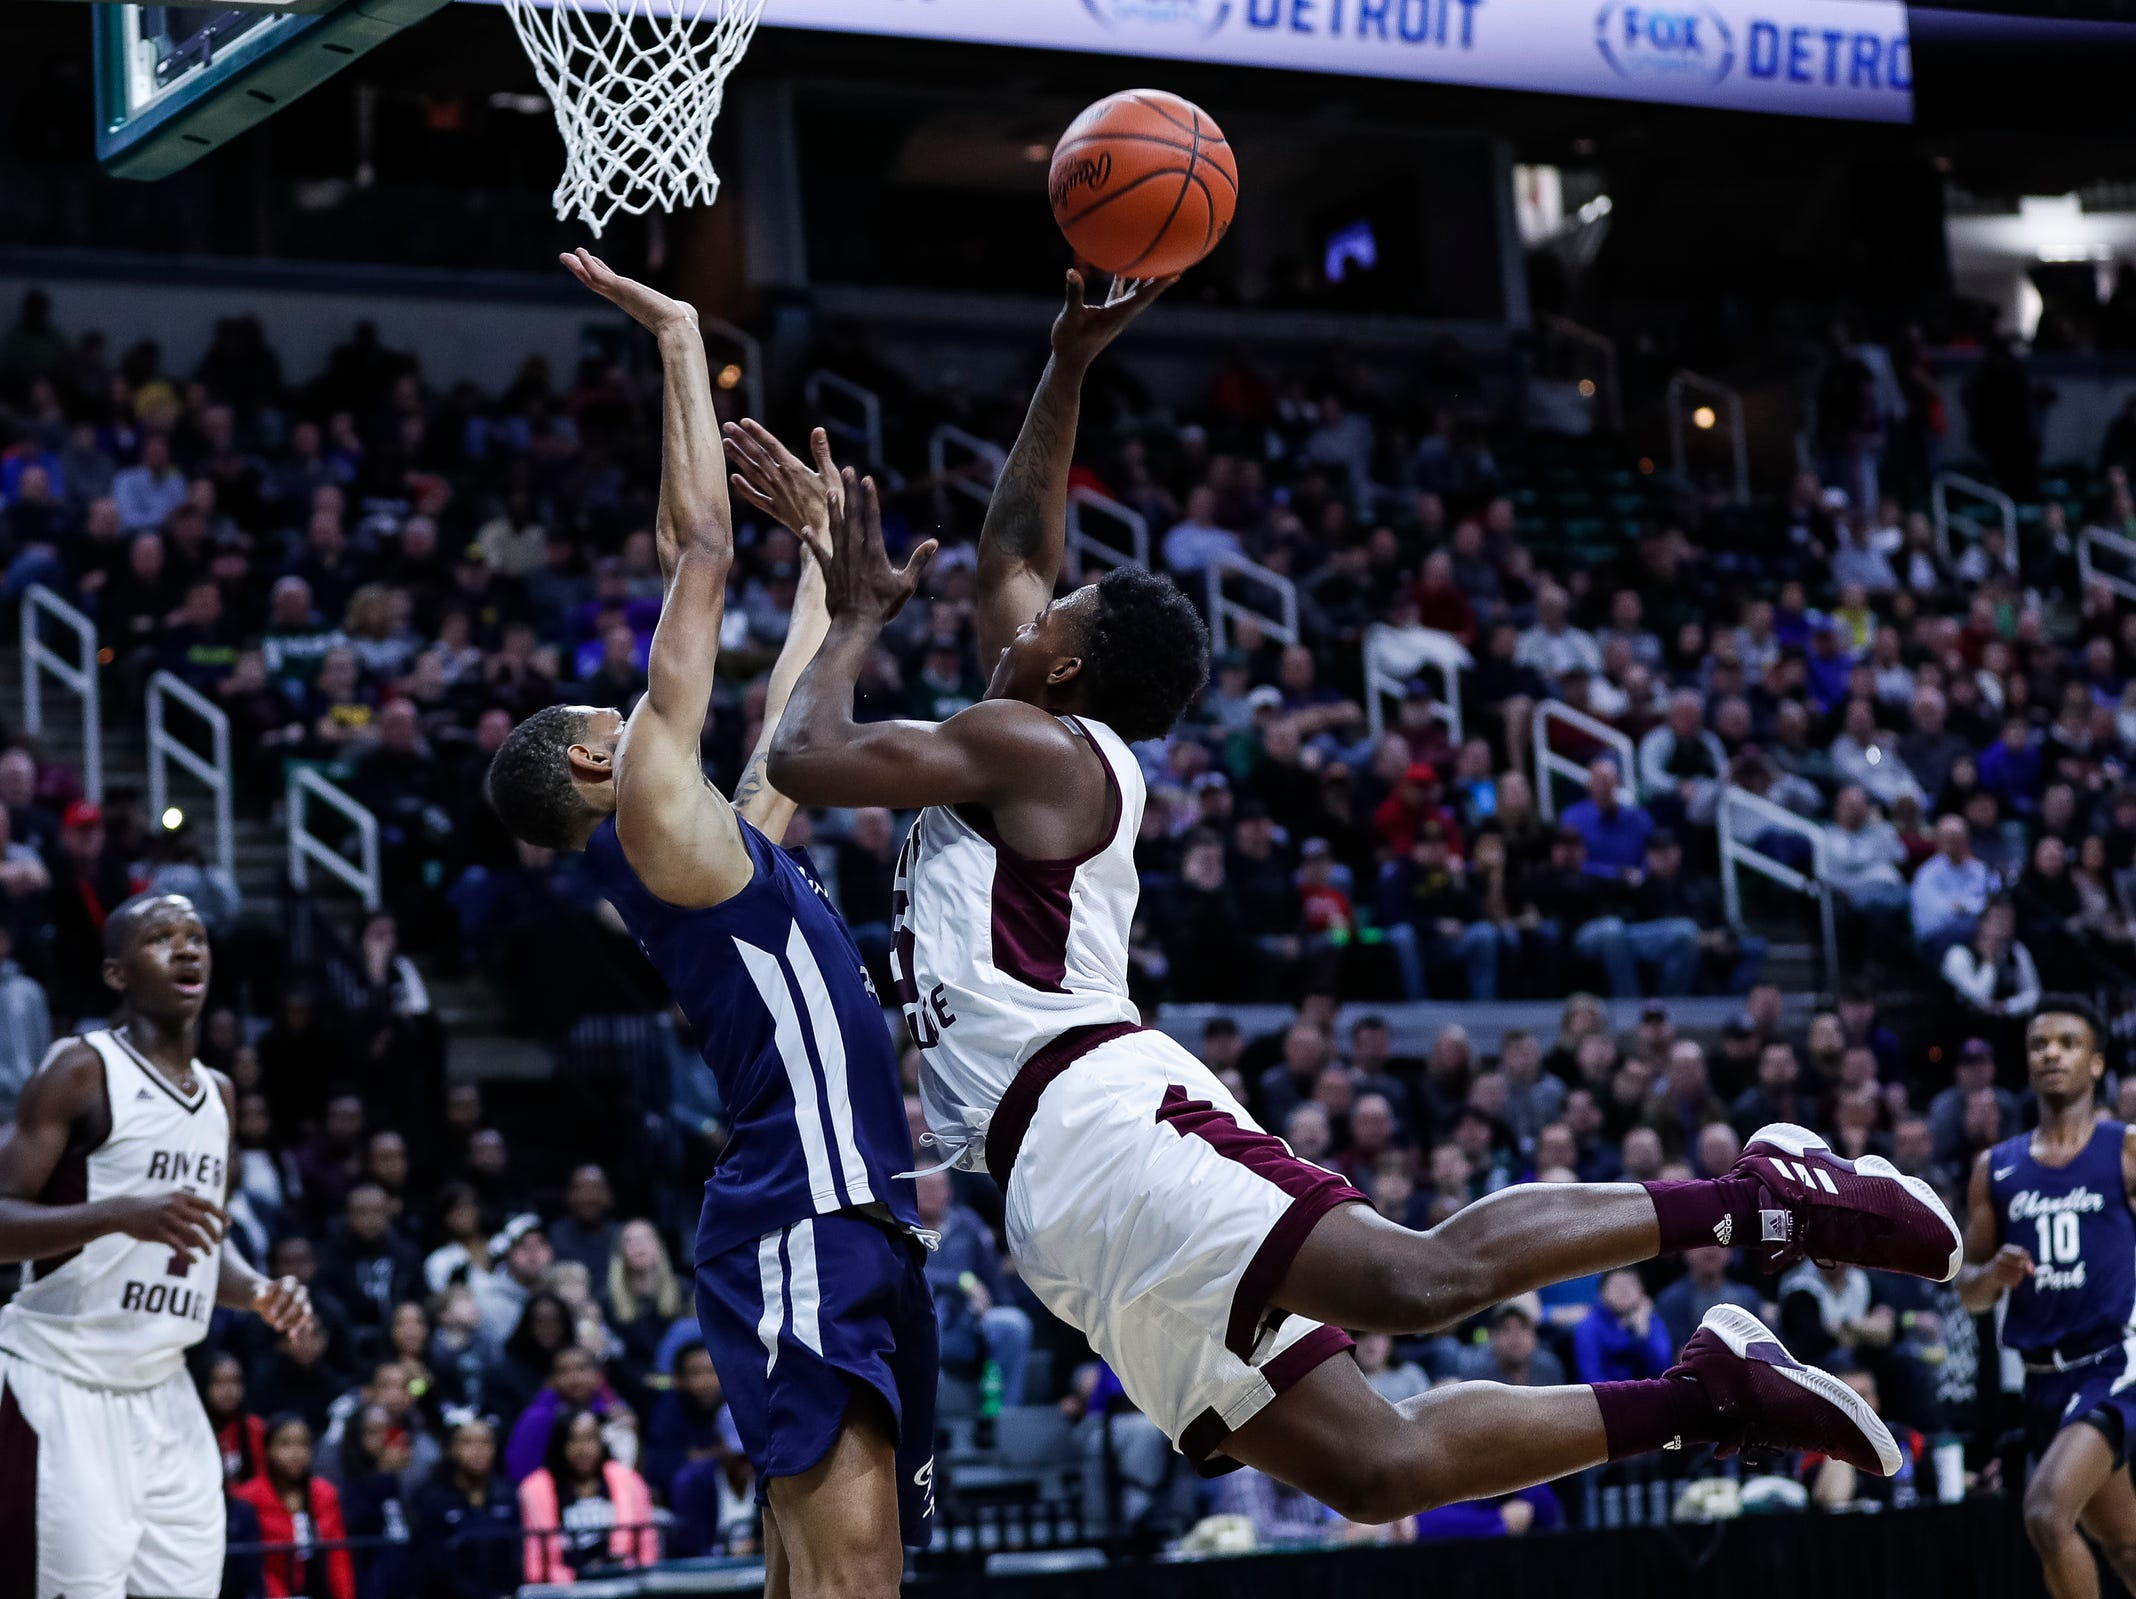 River Rouge's Jason Norton (5) makes a layup against Harper Woods Chandler Park during the first half of MHSAA Division 2 semifinal at the Breslin Center in East Lansing, Friday, March 15, 2019.